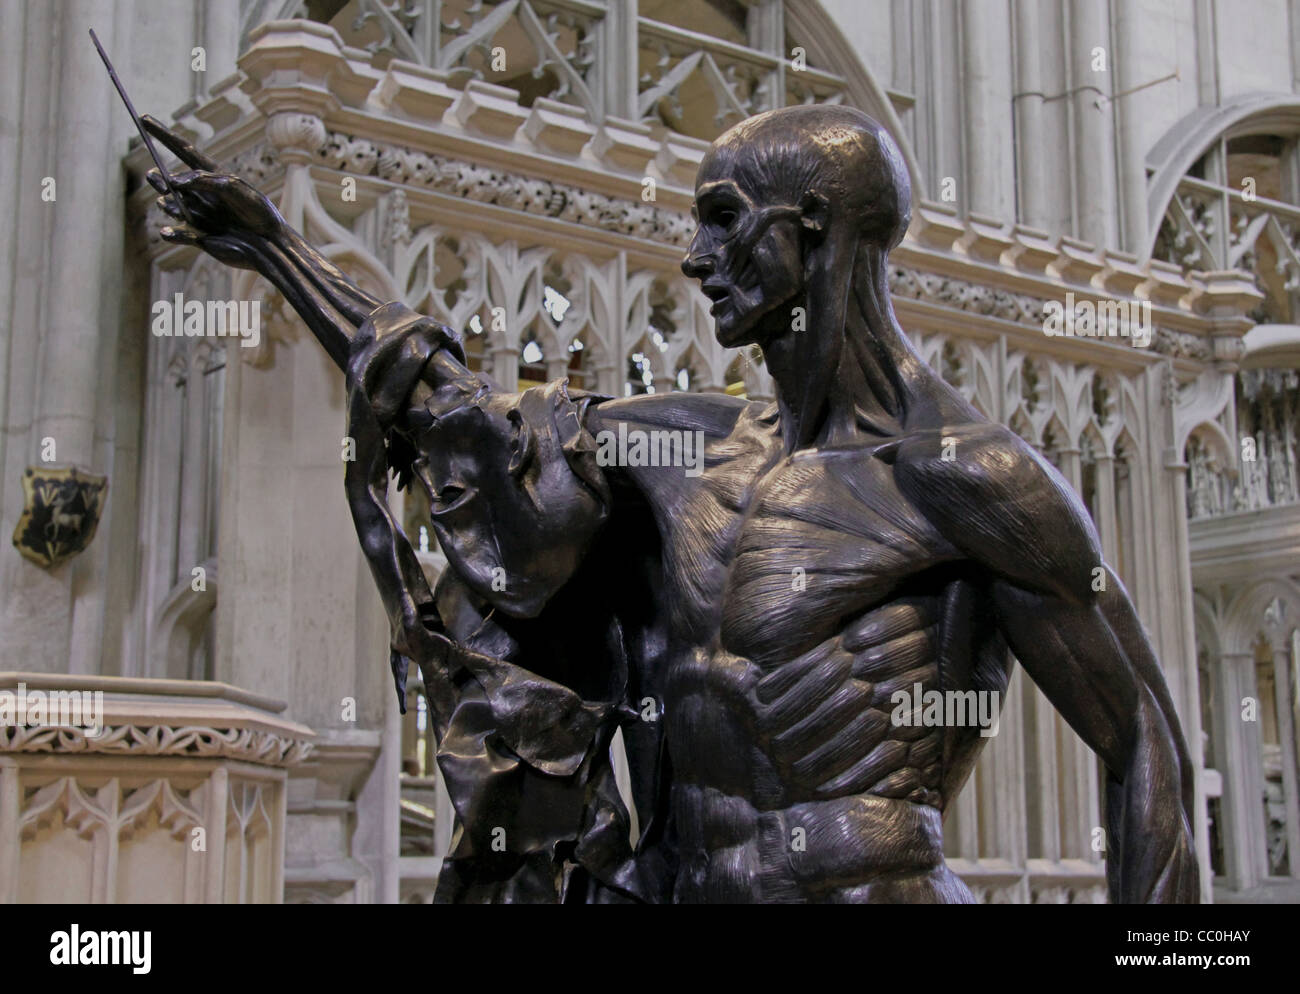 Damien Hirst's 'St Bartholomew, Exquisite Pain' At The Crucible Exhibition, Gloucester - Stock Image